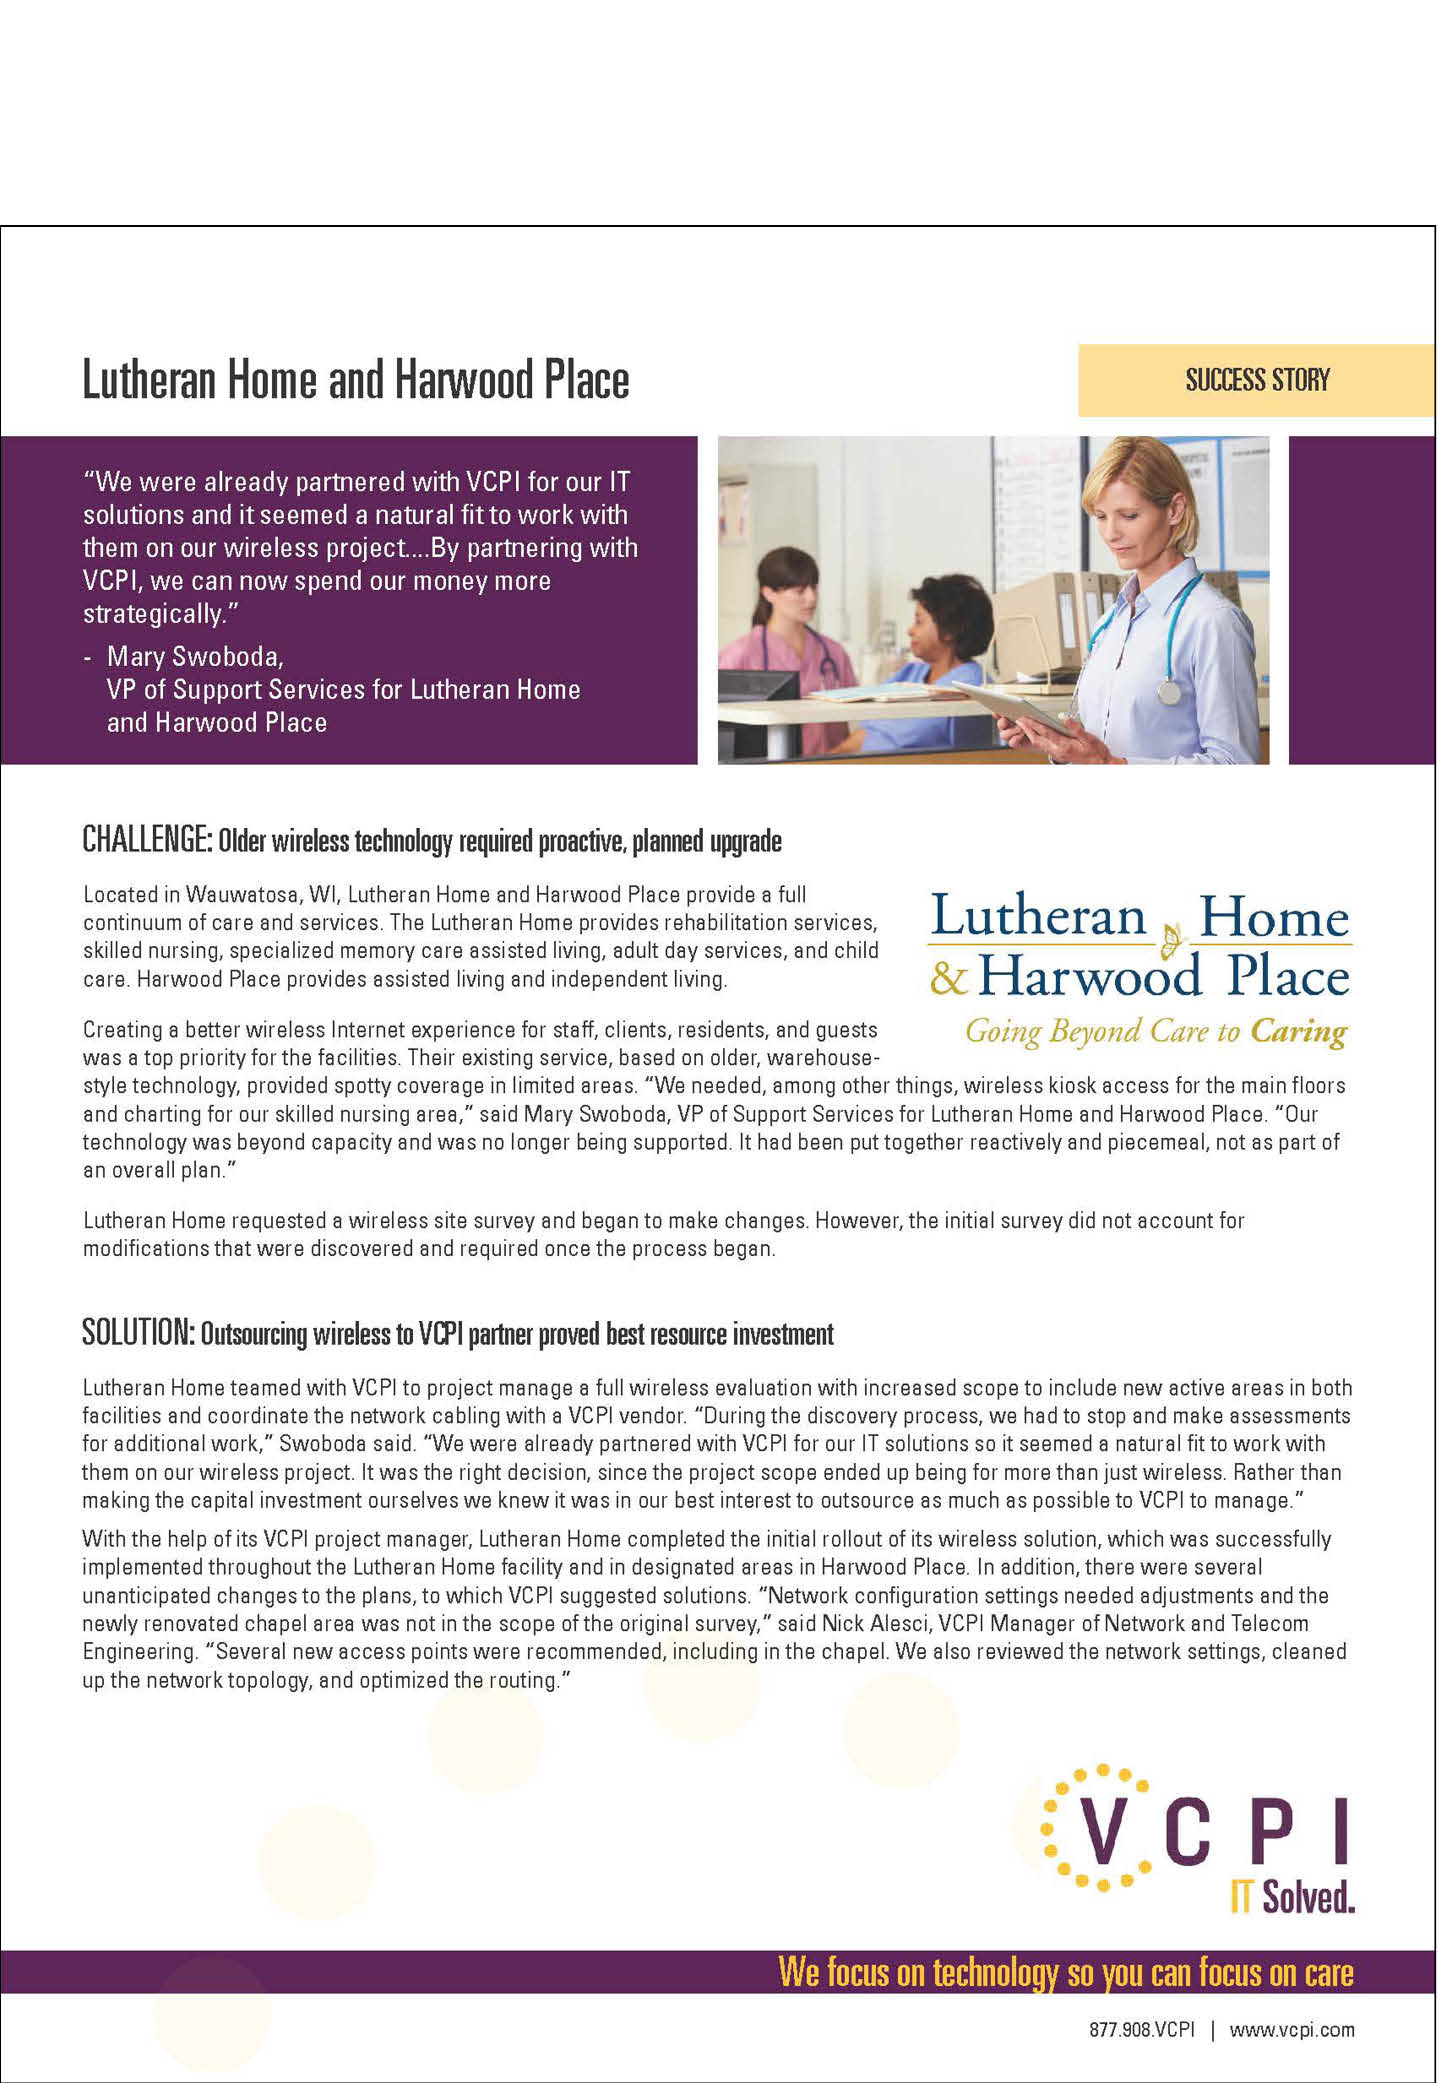 Lutheran Home and Harwood Place Wireless Success Story